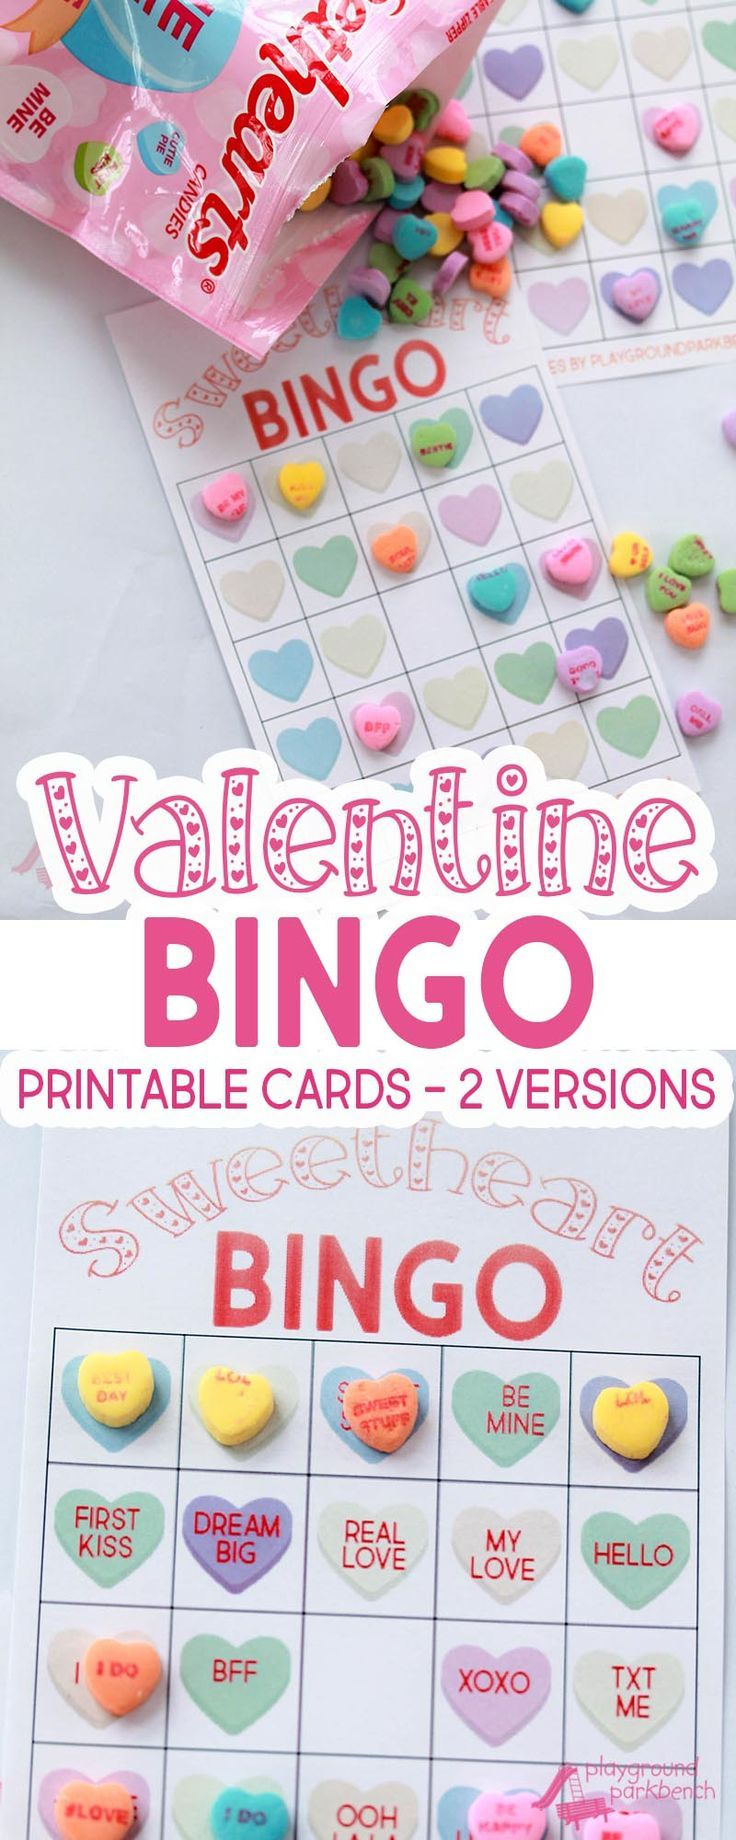 Our Valentine Bingo game printable features 2 different sets of 20 unique game cards. Play the colored hearts version with at your preschool Valentine's Day party, or opt for the conversation heart phrase version for your early readers | Party Games | Val